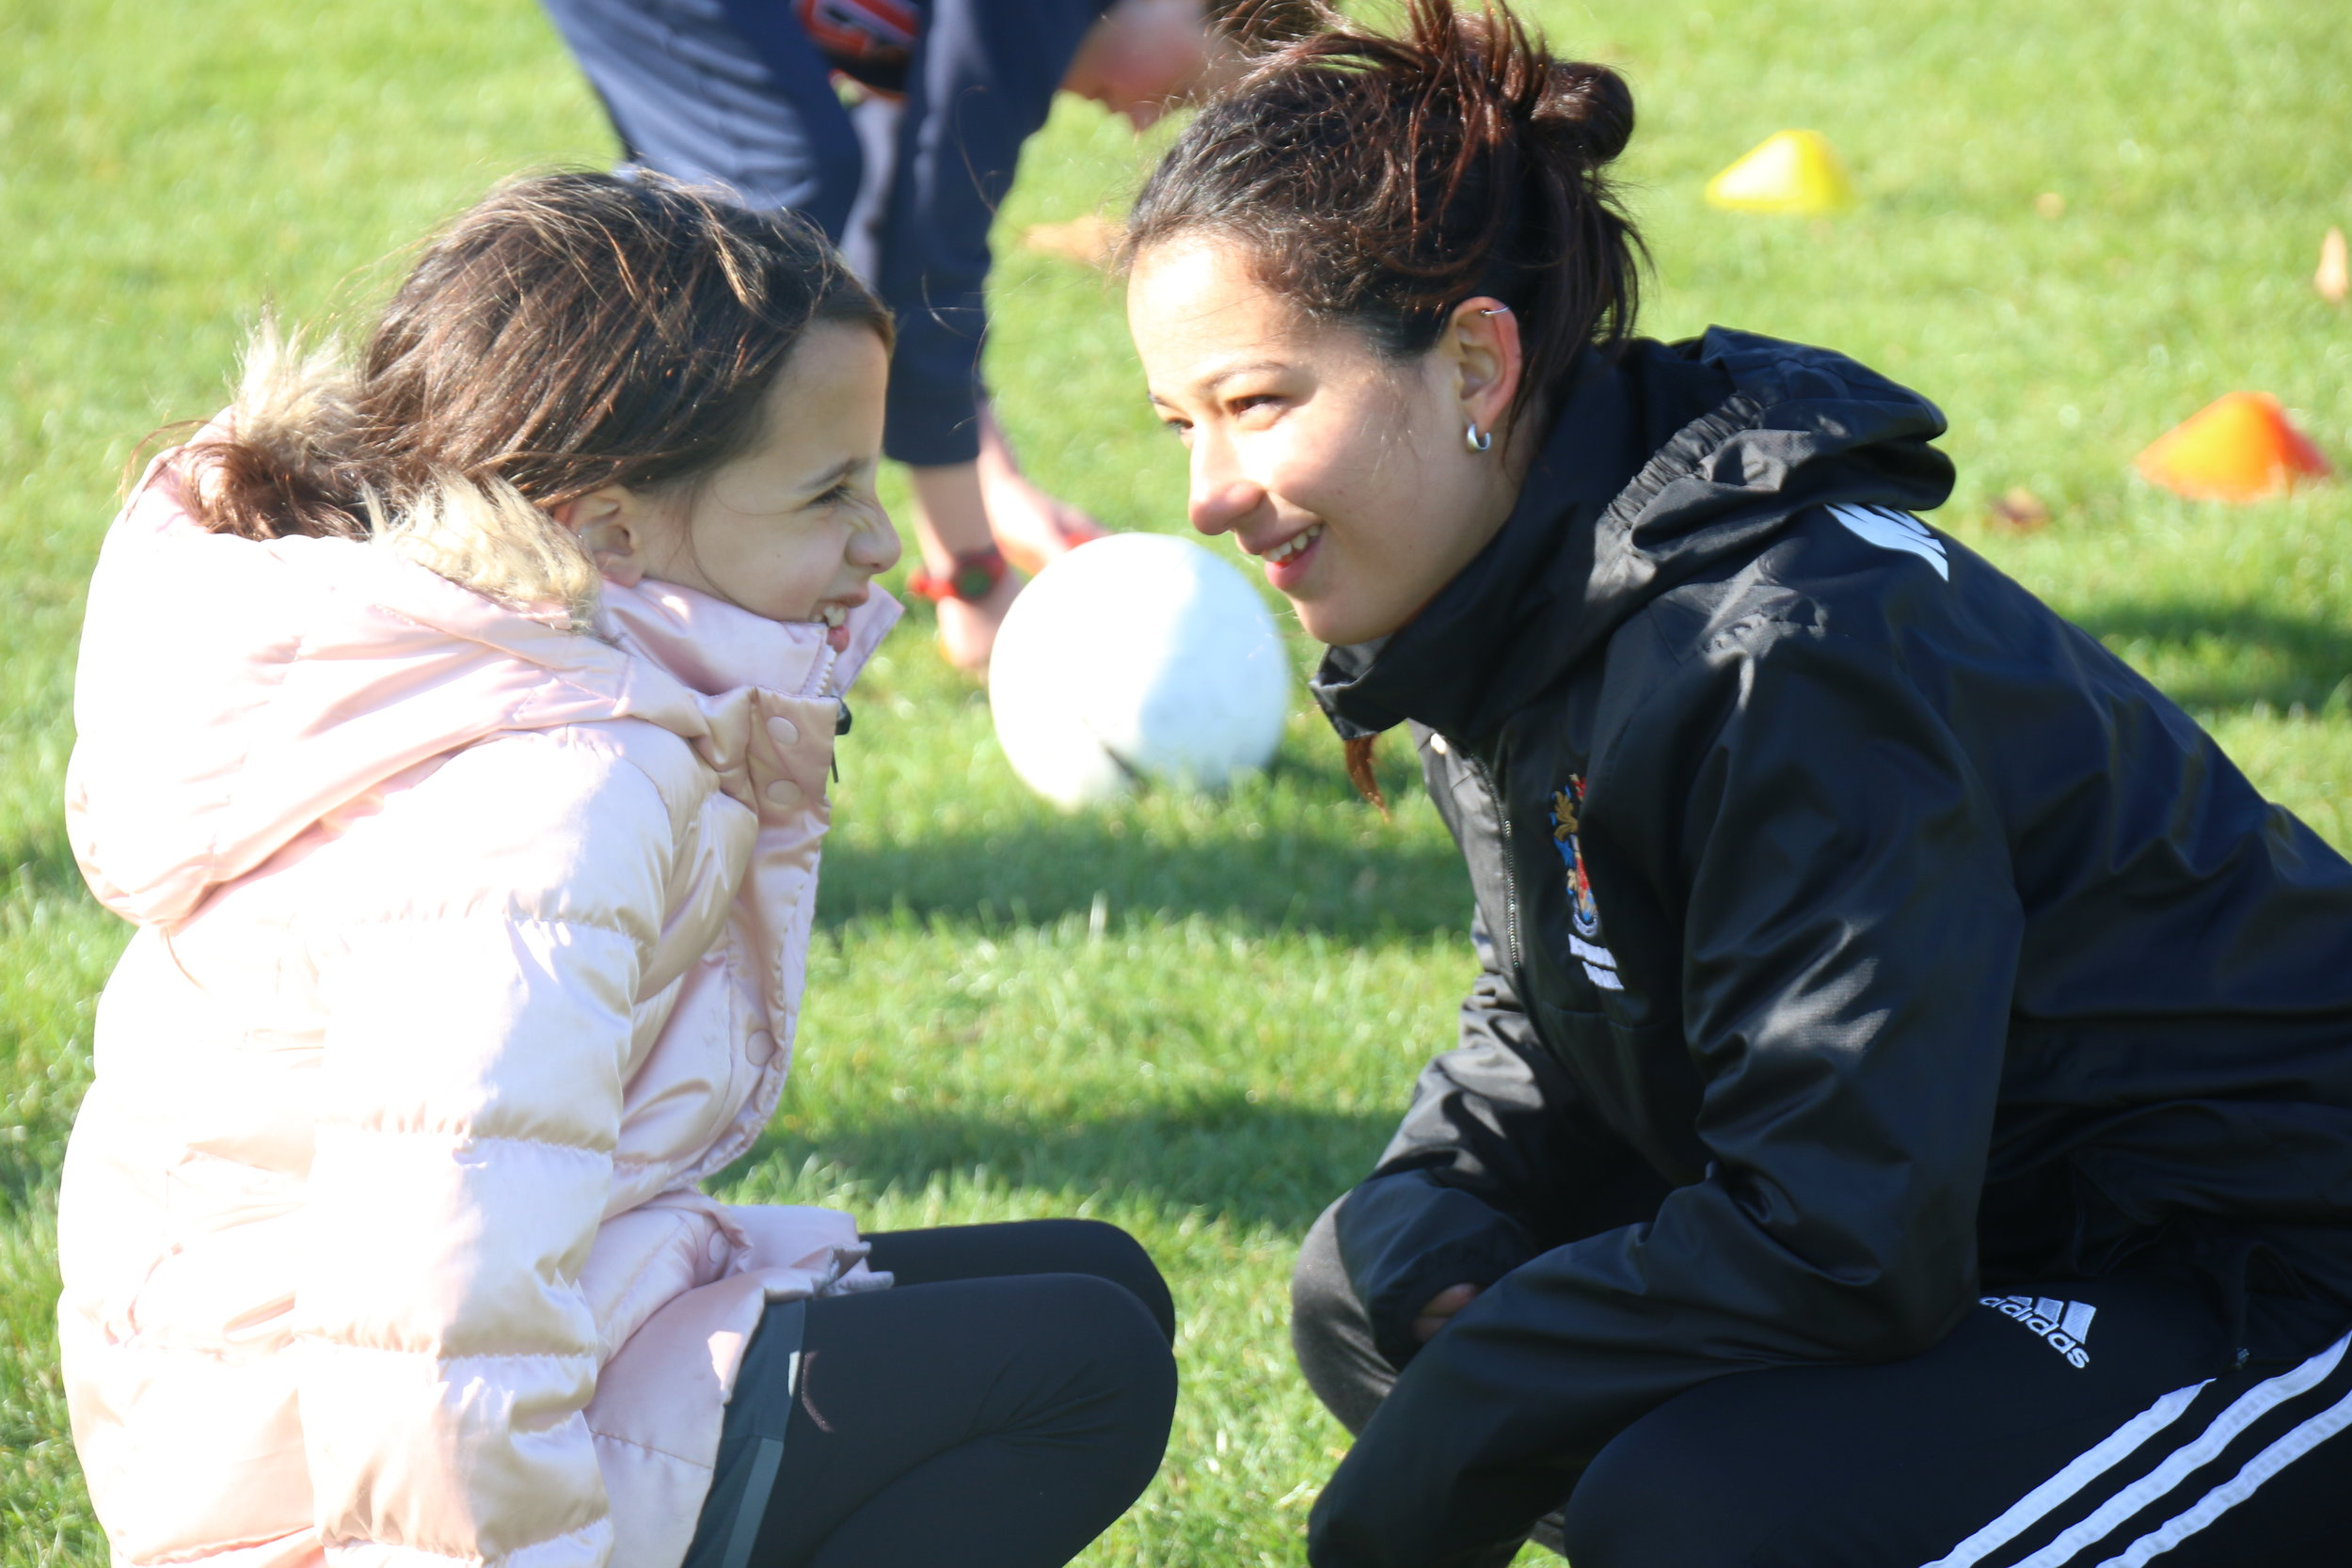 Coaches from a variety of backgrounds, with varying levels of experience help our players score goals across continents